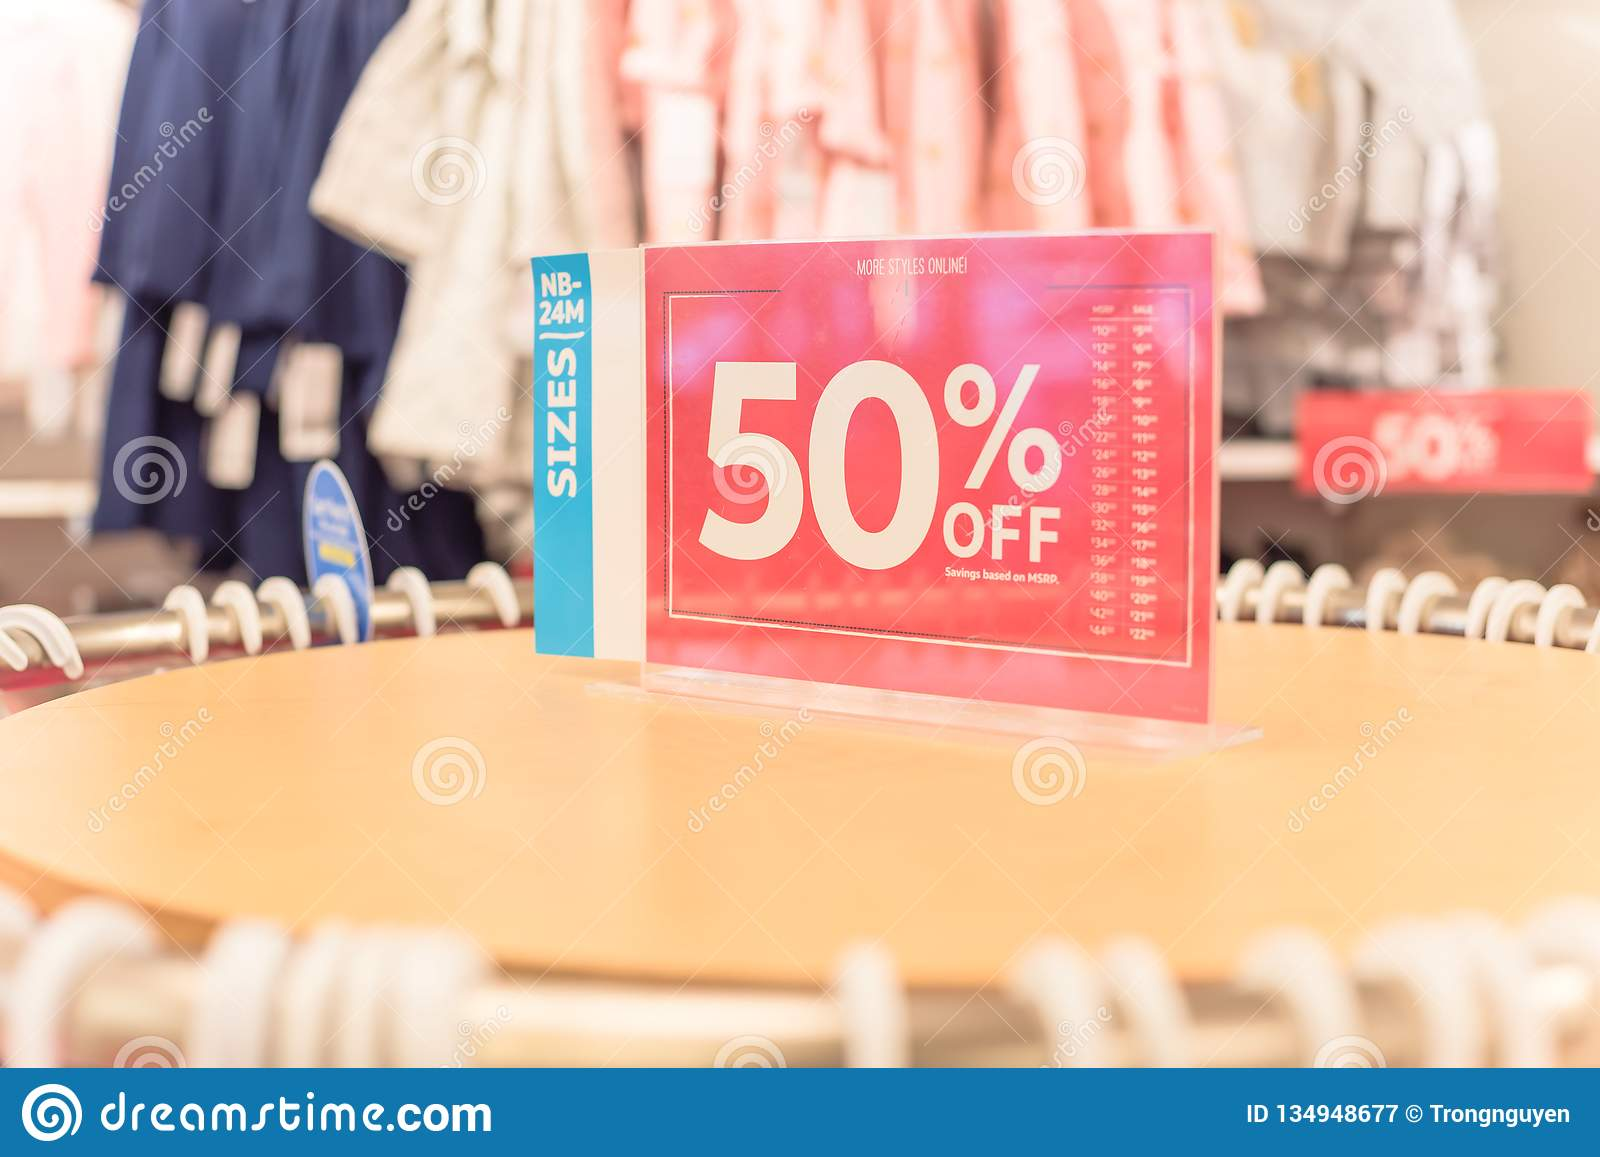 50 Percent Off Sale Sign Over Clothes At Baby Clothing ...